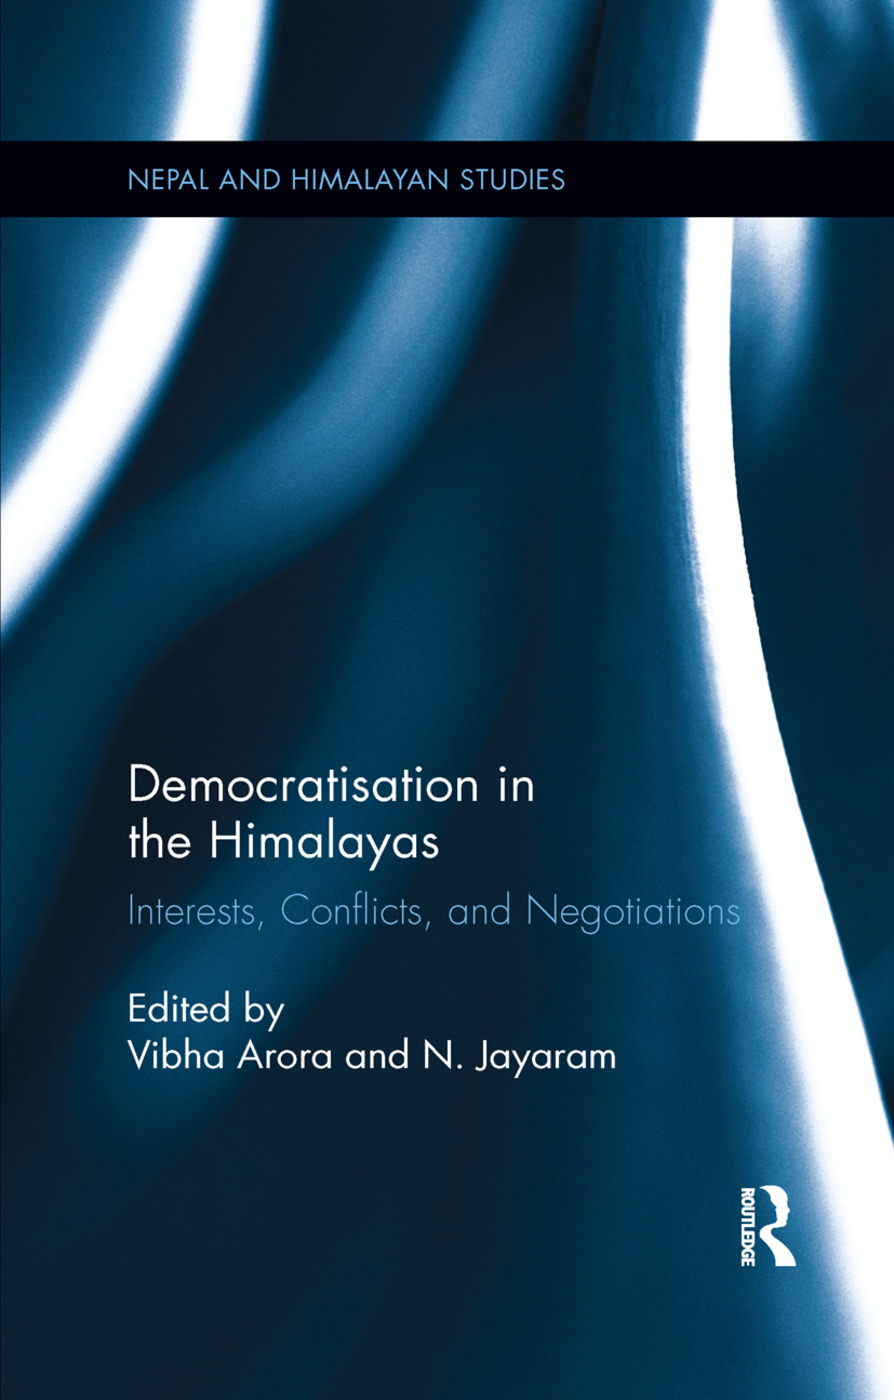 Democratisation in the Himalayas: Interests, Conflicts, and Negotiations book cover